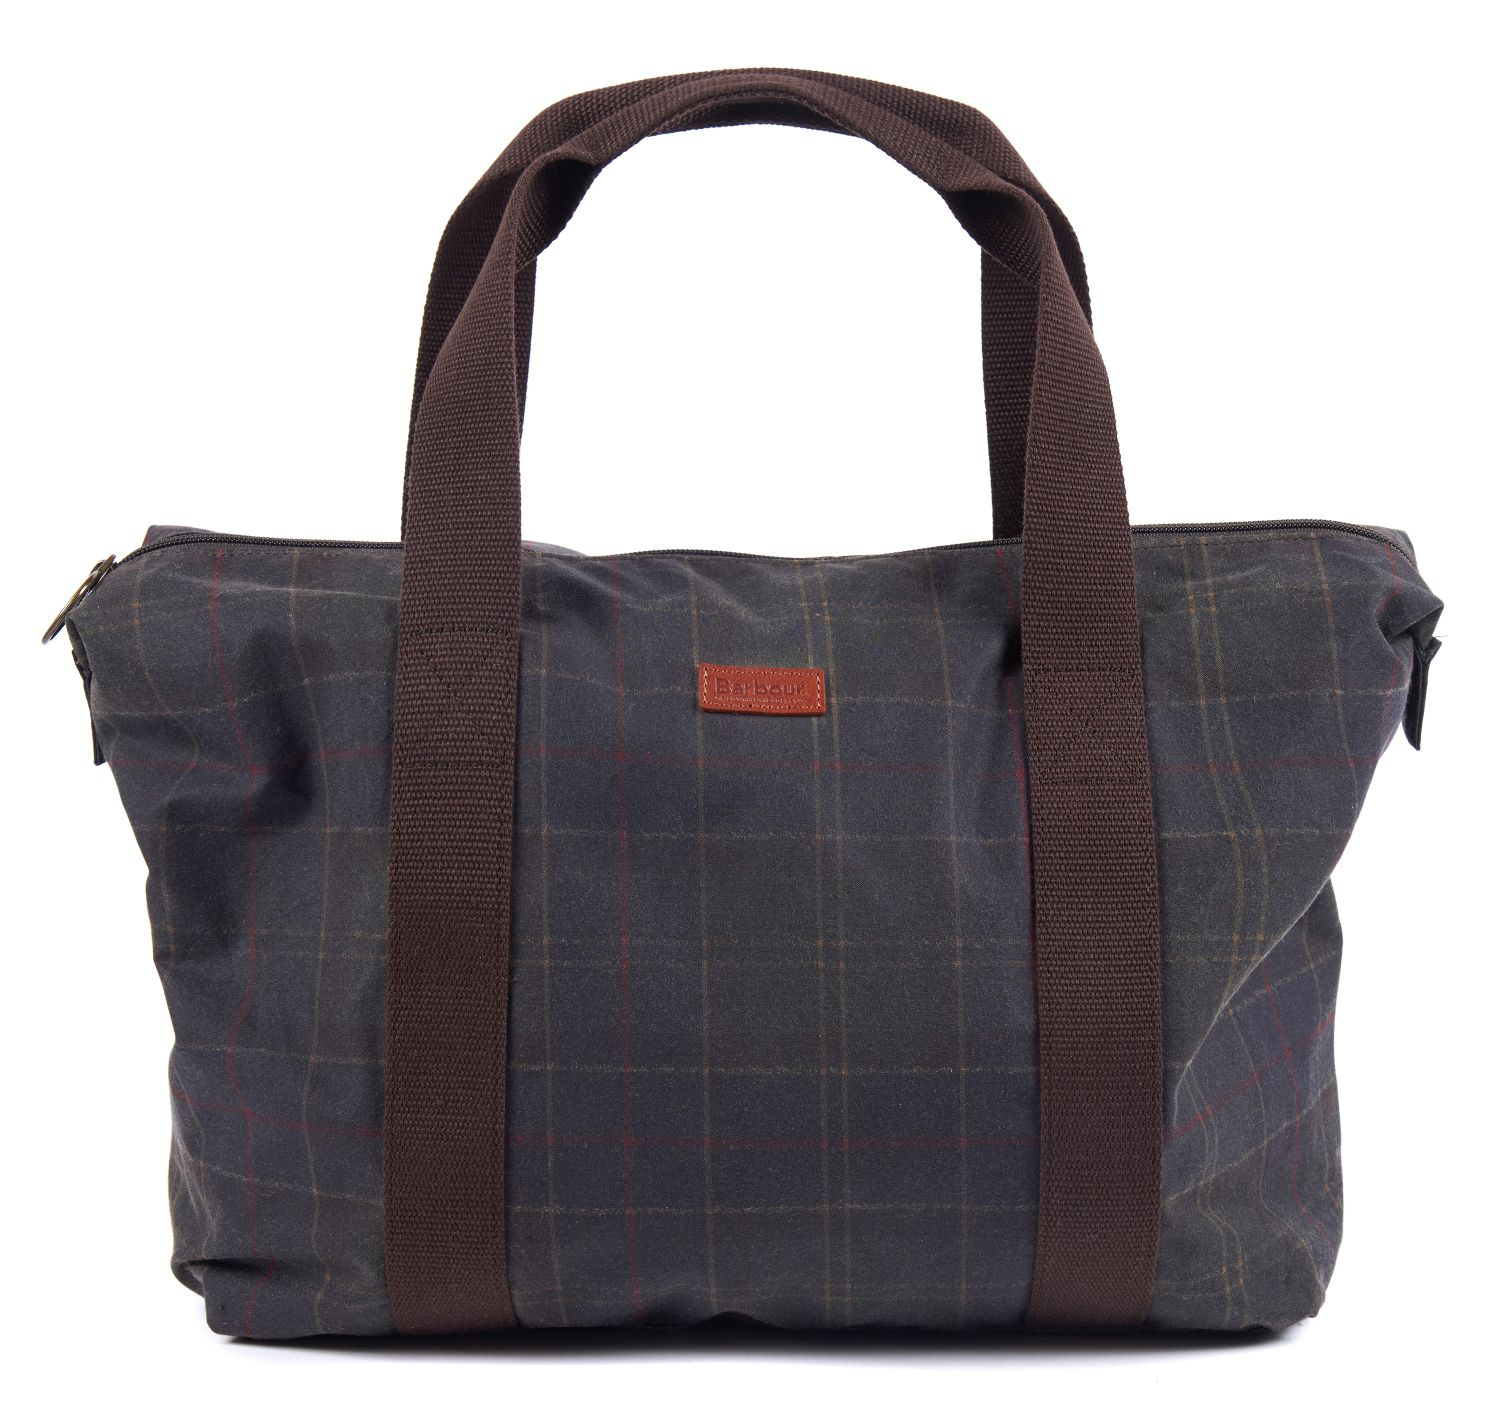 Barbour Barbour Eadan Day Bag Barbour International